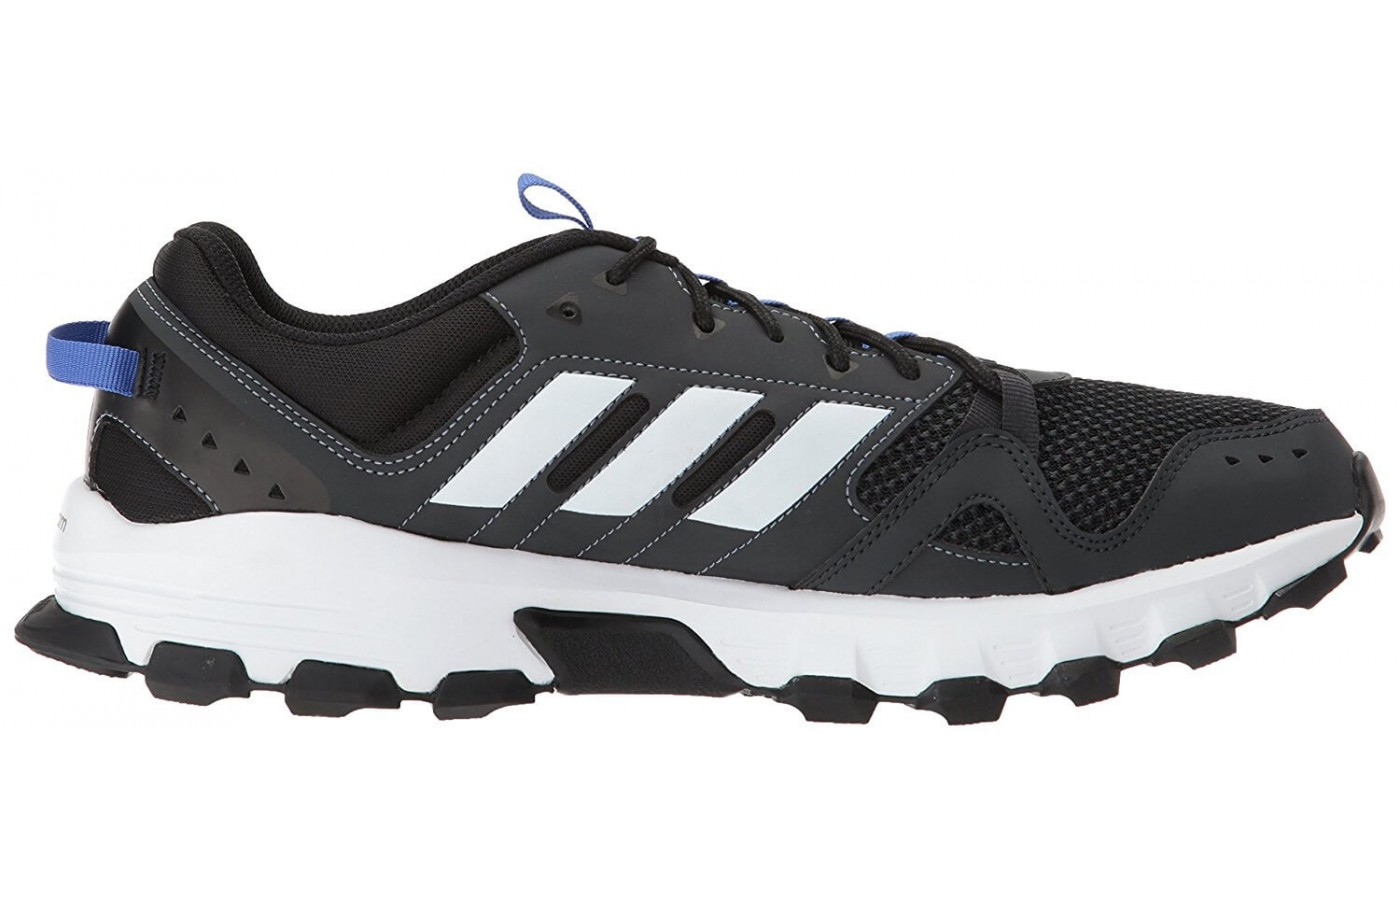 adidas Rockadia Trail 3.0 Shoes Black | adidas US